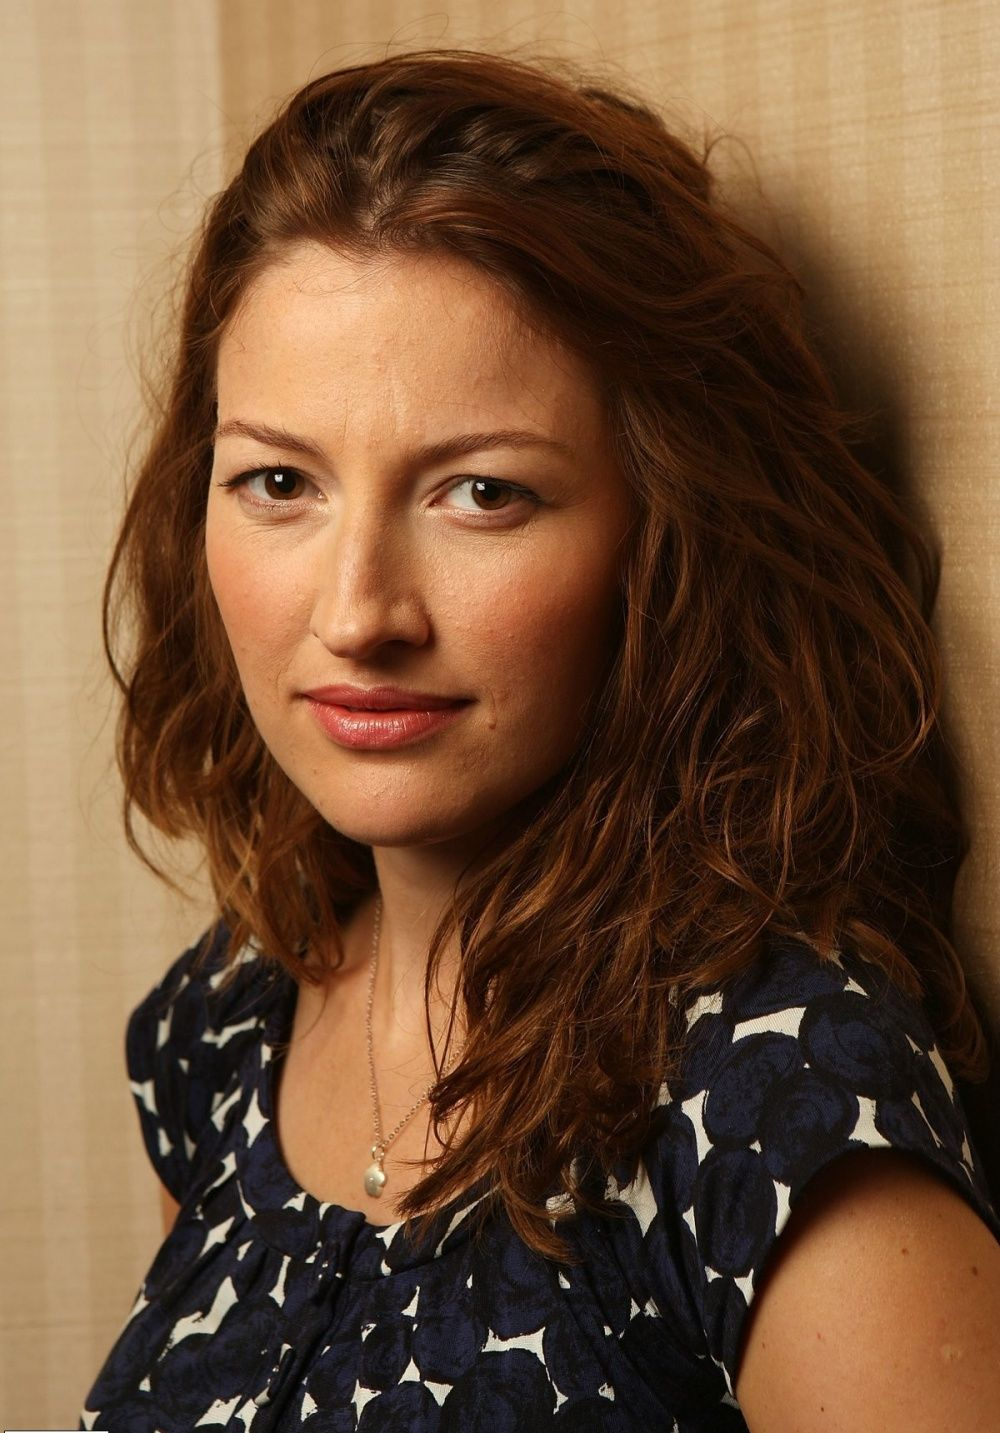 Boobs Kelly Macdonald (born 1976) naked photo 2017